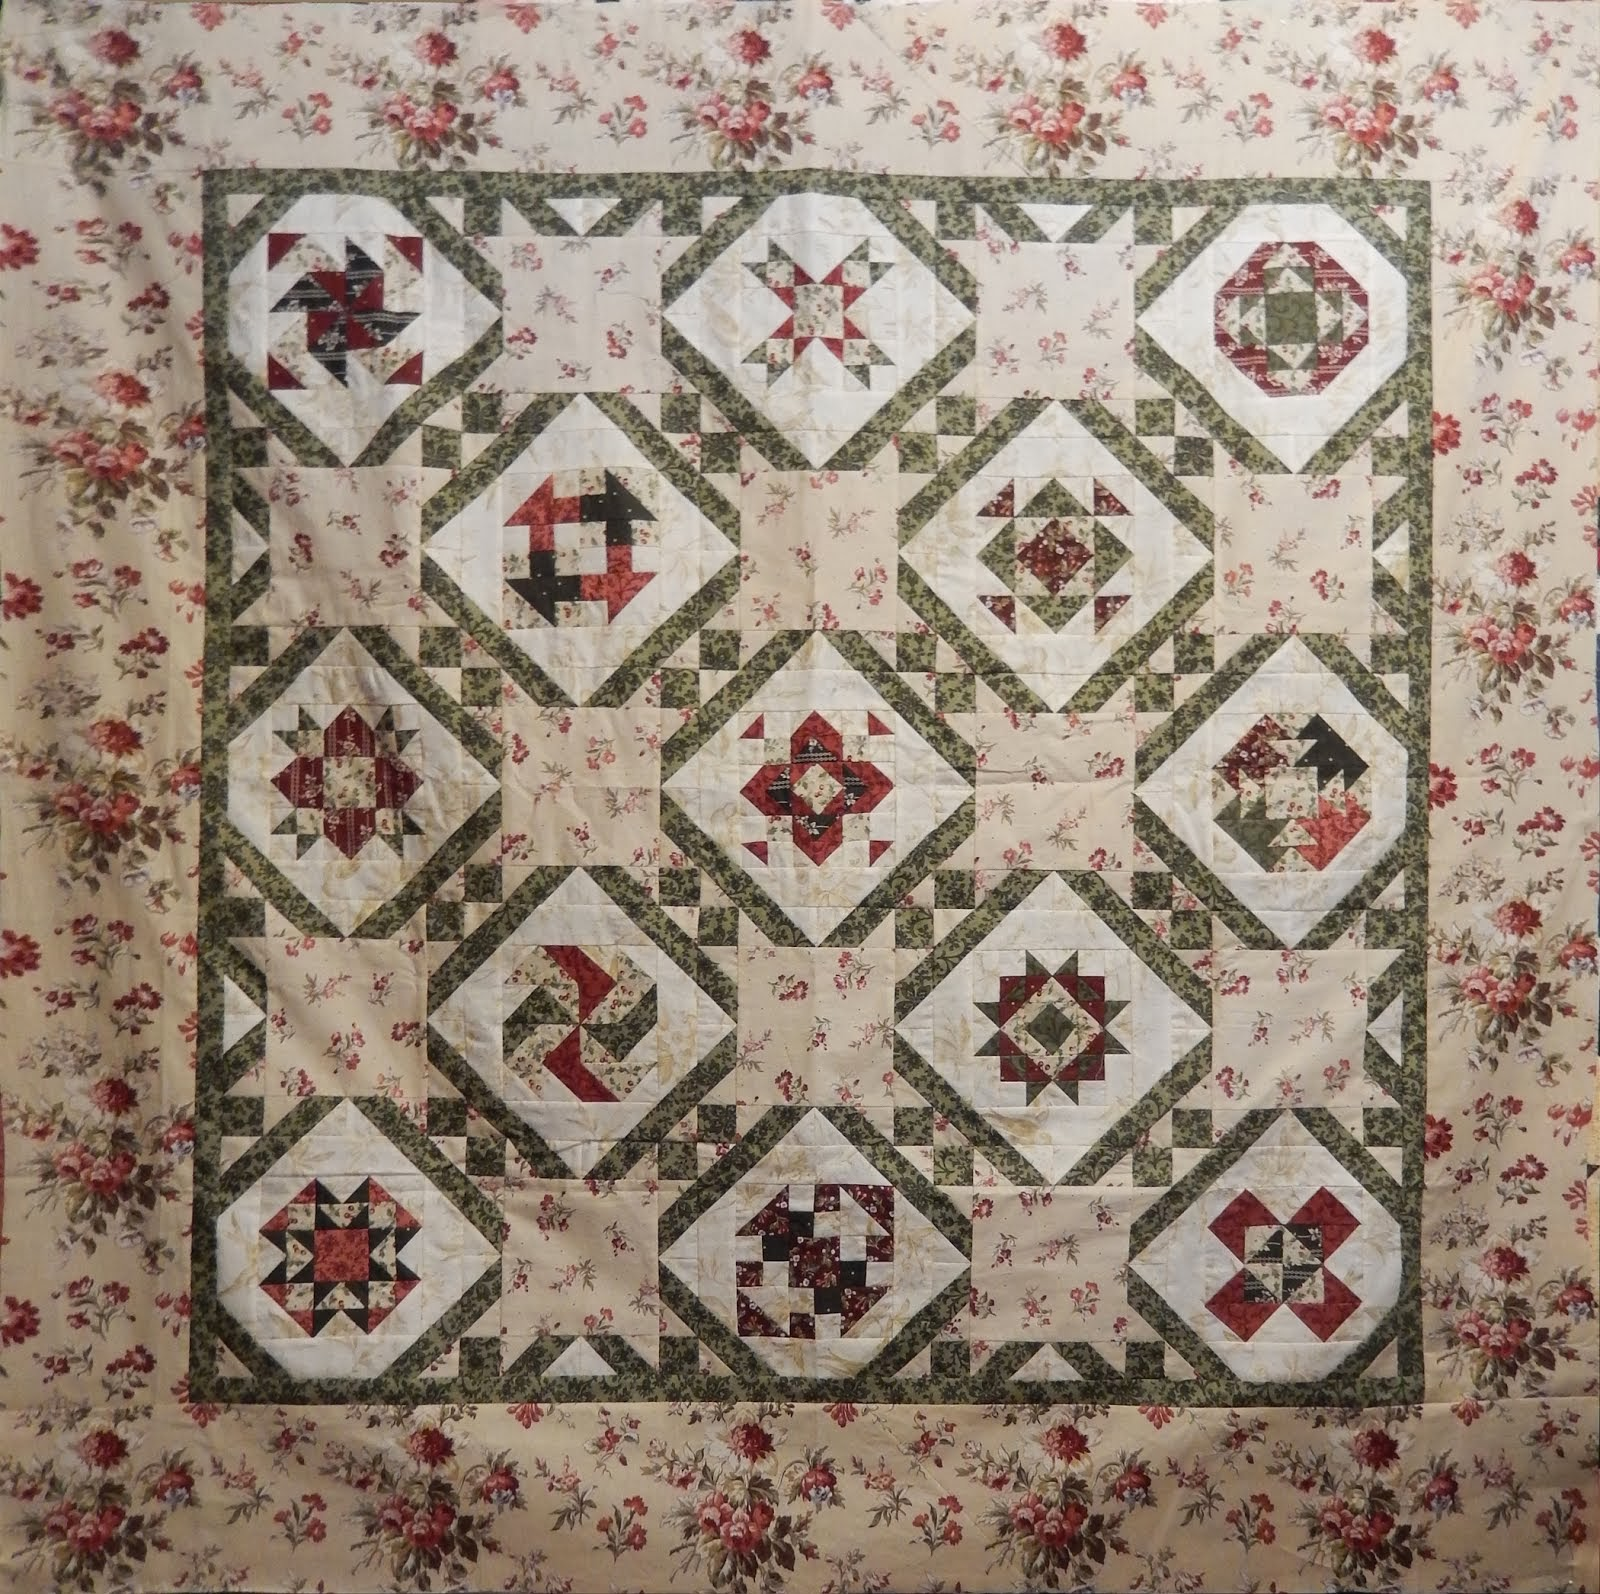 Open Gate Quilts BOM 2